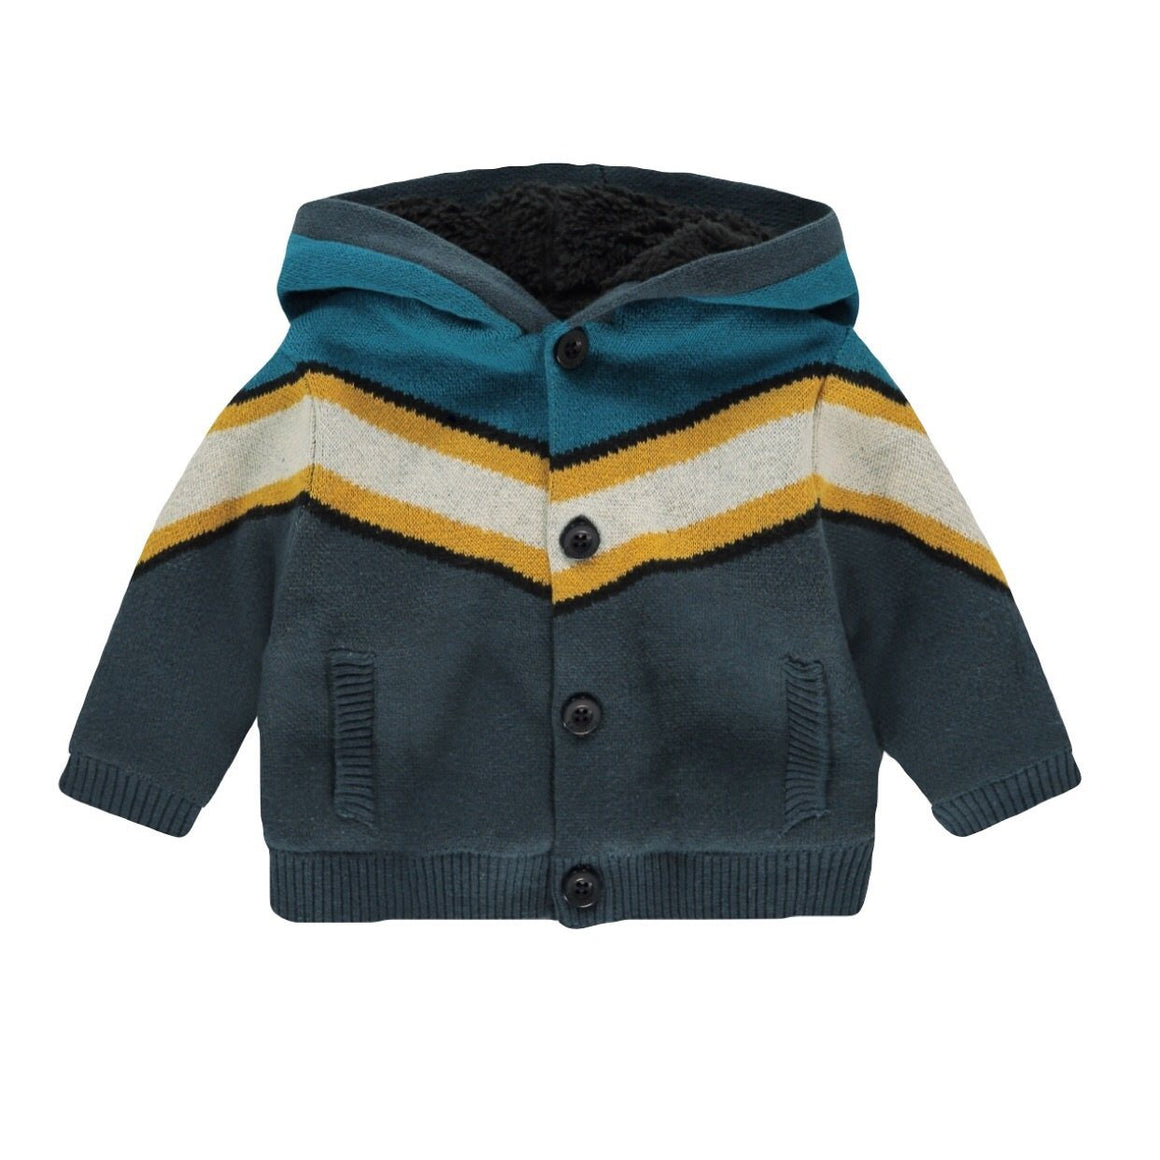 94534 - Noppies - Alamosa Baby Boy Organic Cardigan - Midnight Navy Cardigan Noppies